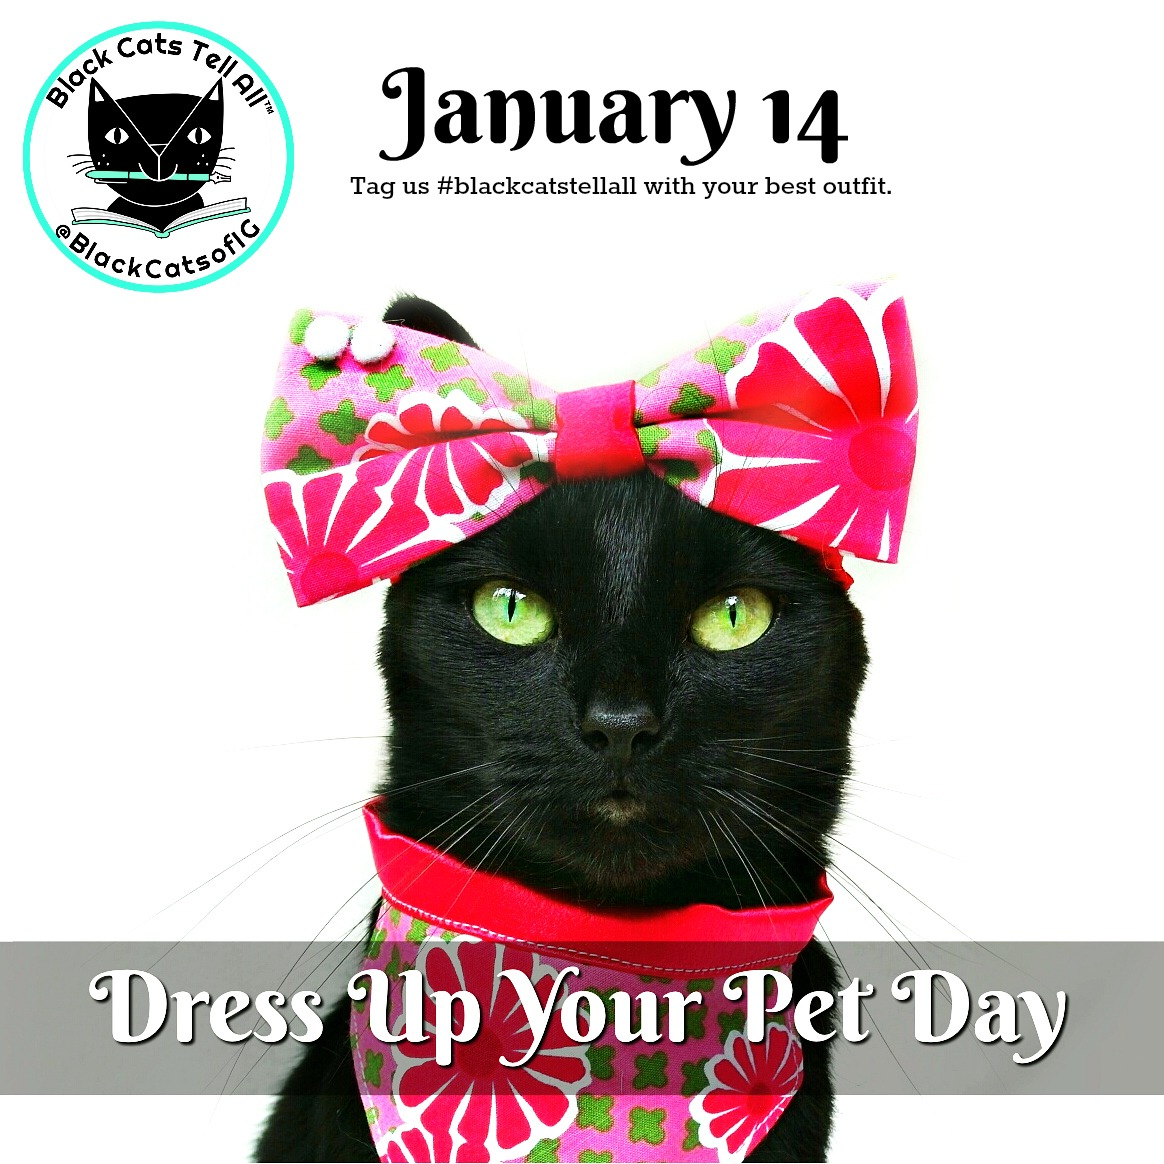 dress_up_your-pet_@catwisdom101